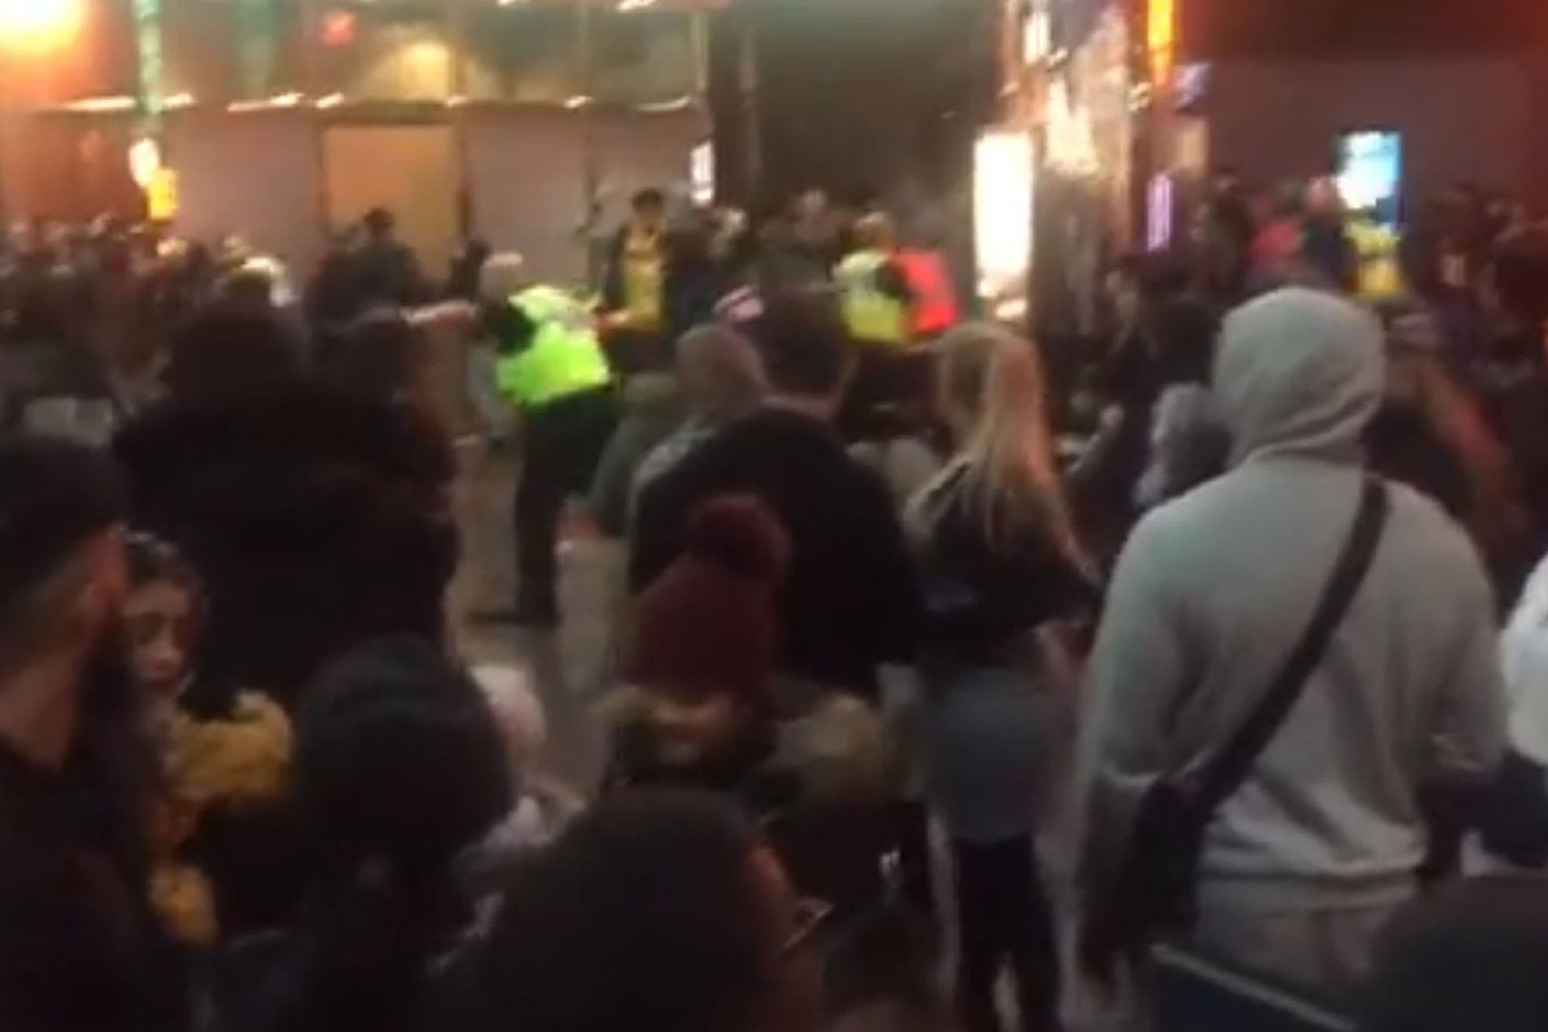 SECOND CINEMA CHAIN DROPS GANG MOVIE AFTER MASS BRAWL